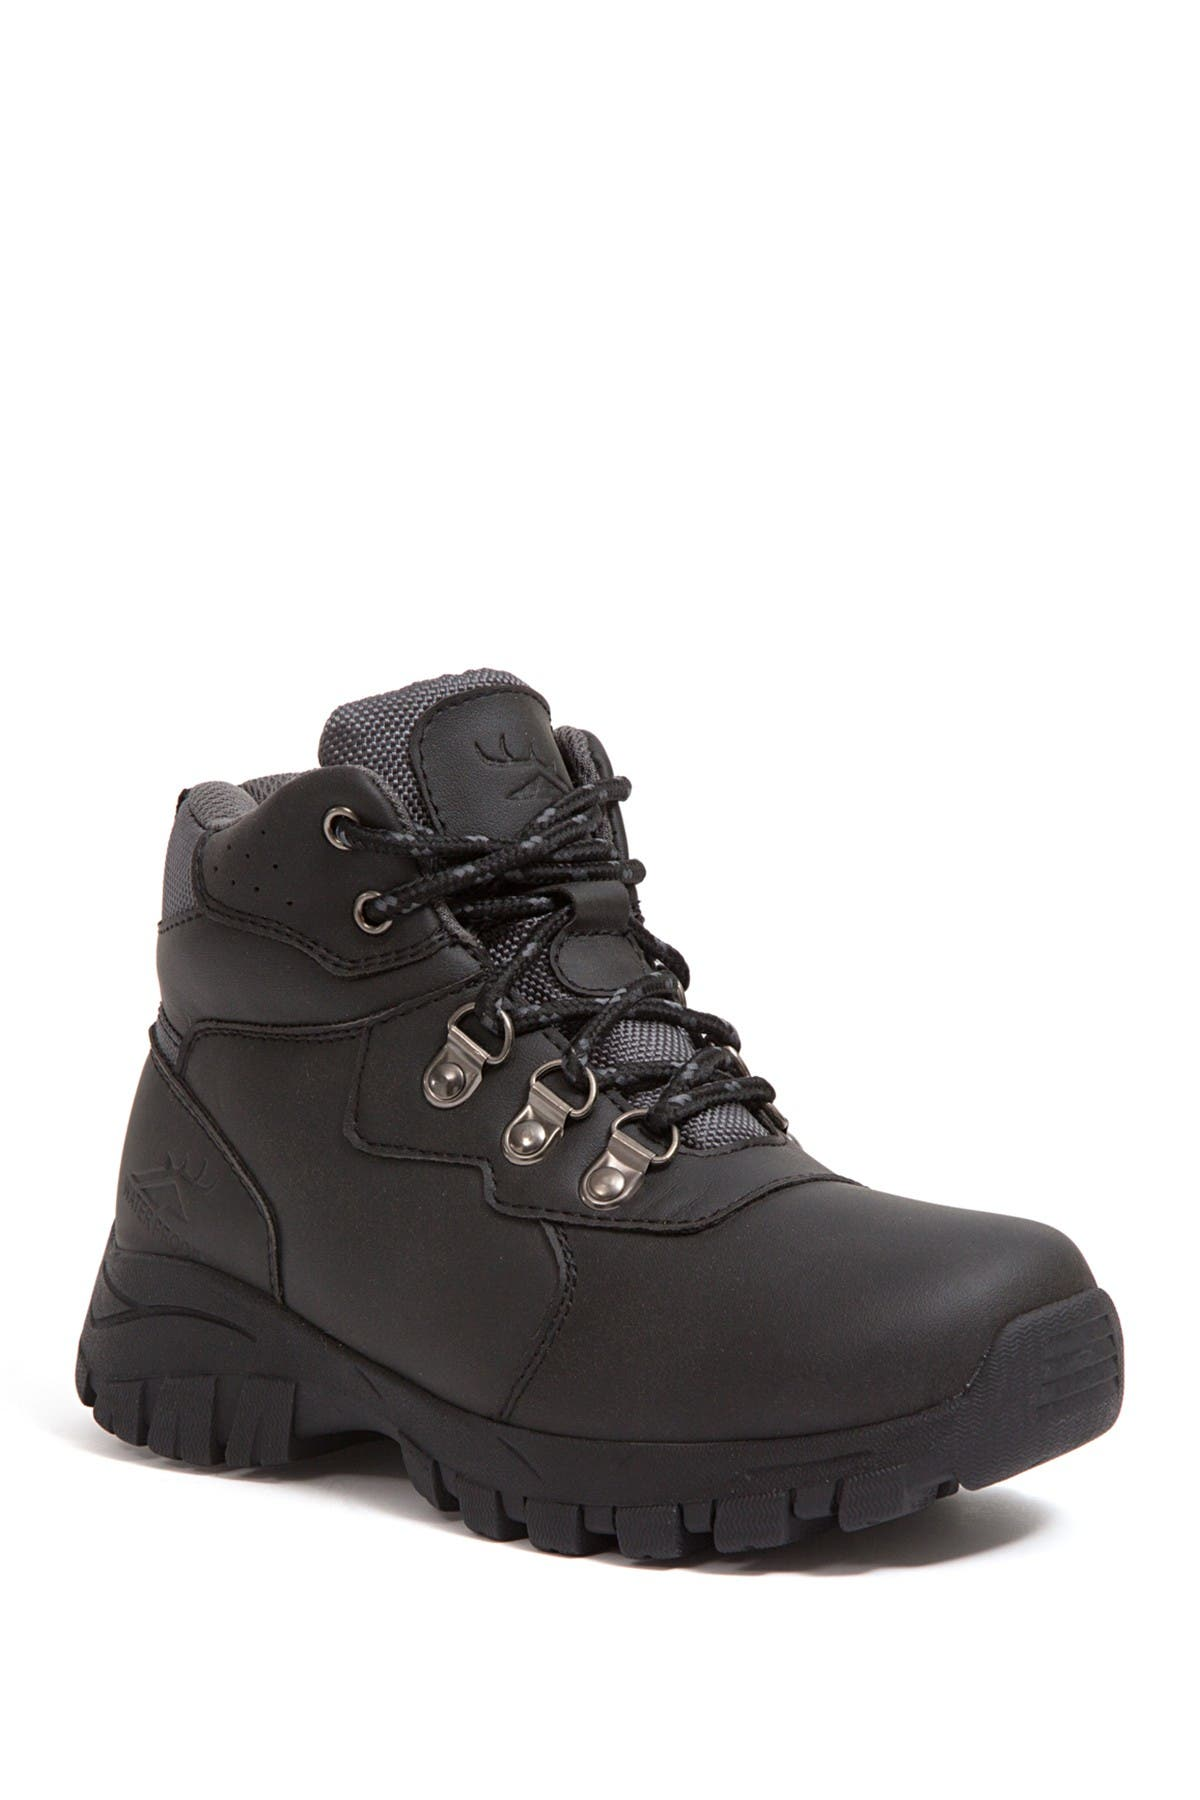 Image of Deer Stags Gorp Lace-Up Boot